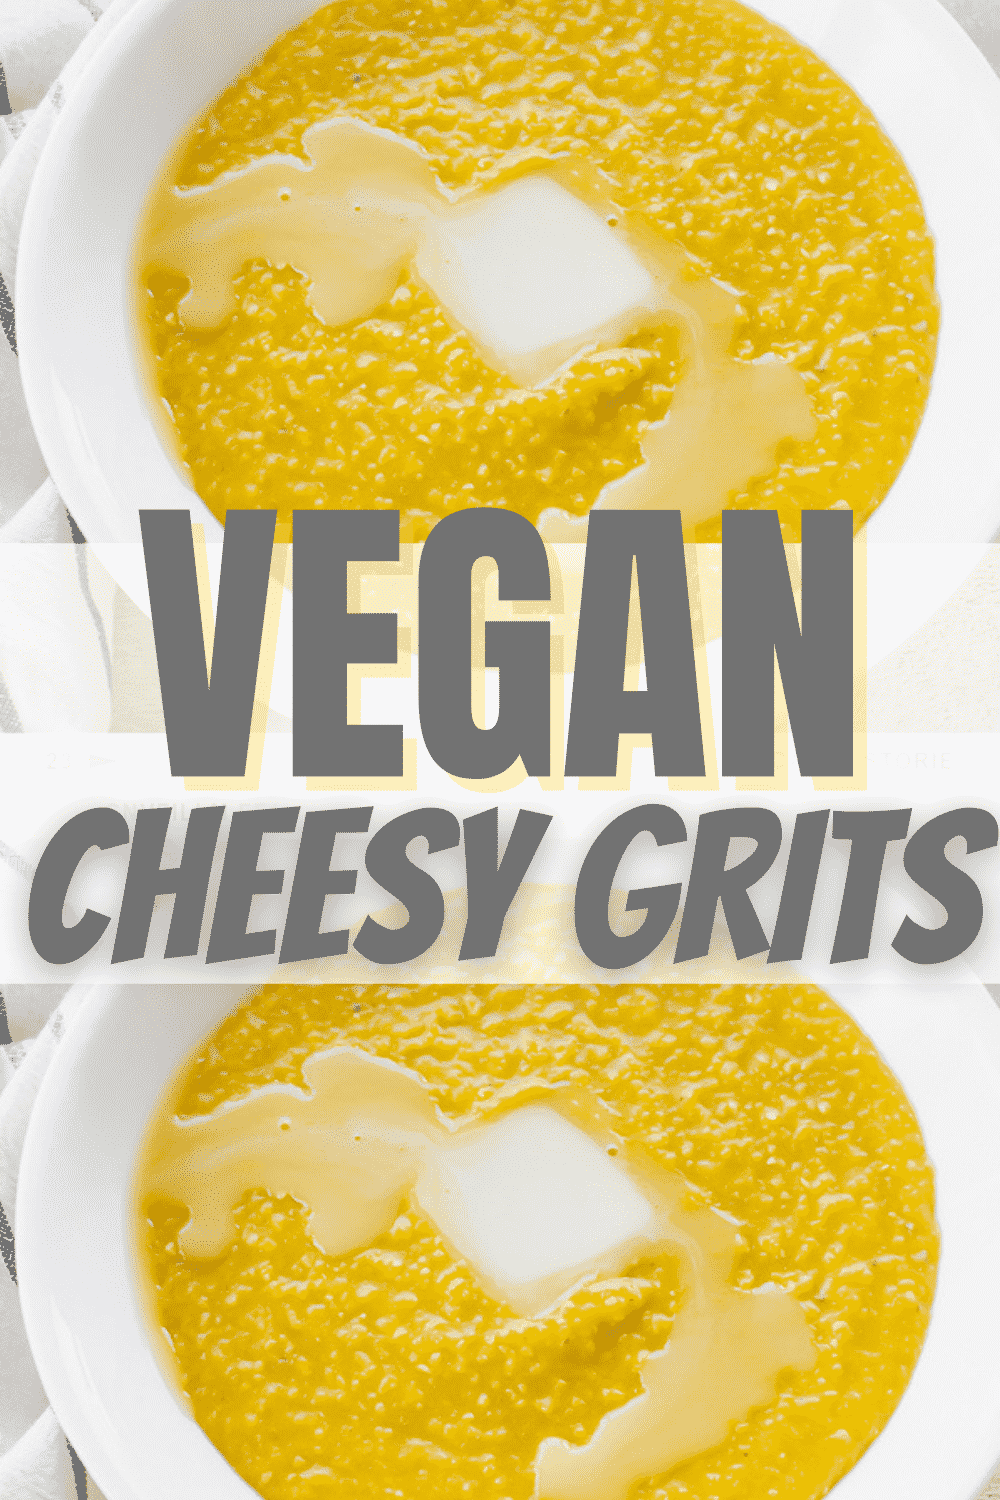 Vegan Grits are a super creamy side dish that's perfect for breakfast, lunch, or dinner! Dress up your next brunch with this 4-ingredient dish. #vegan #breakfast #brunch